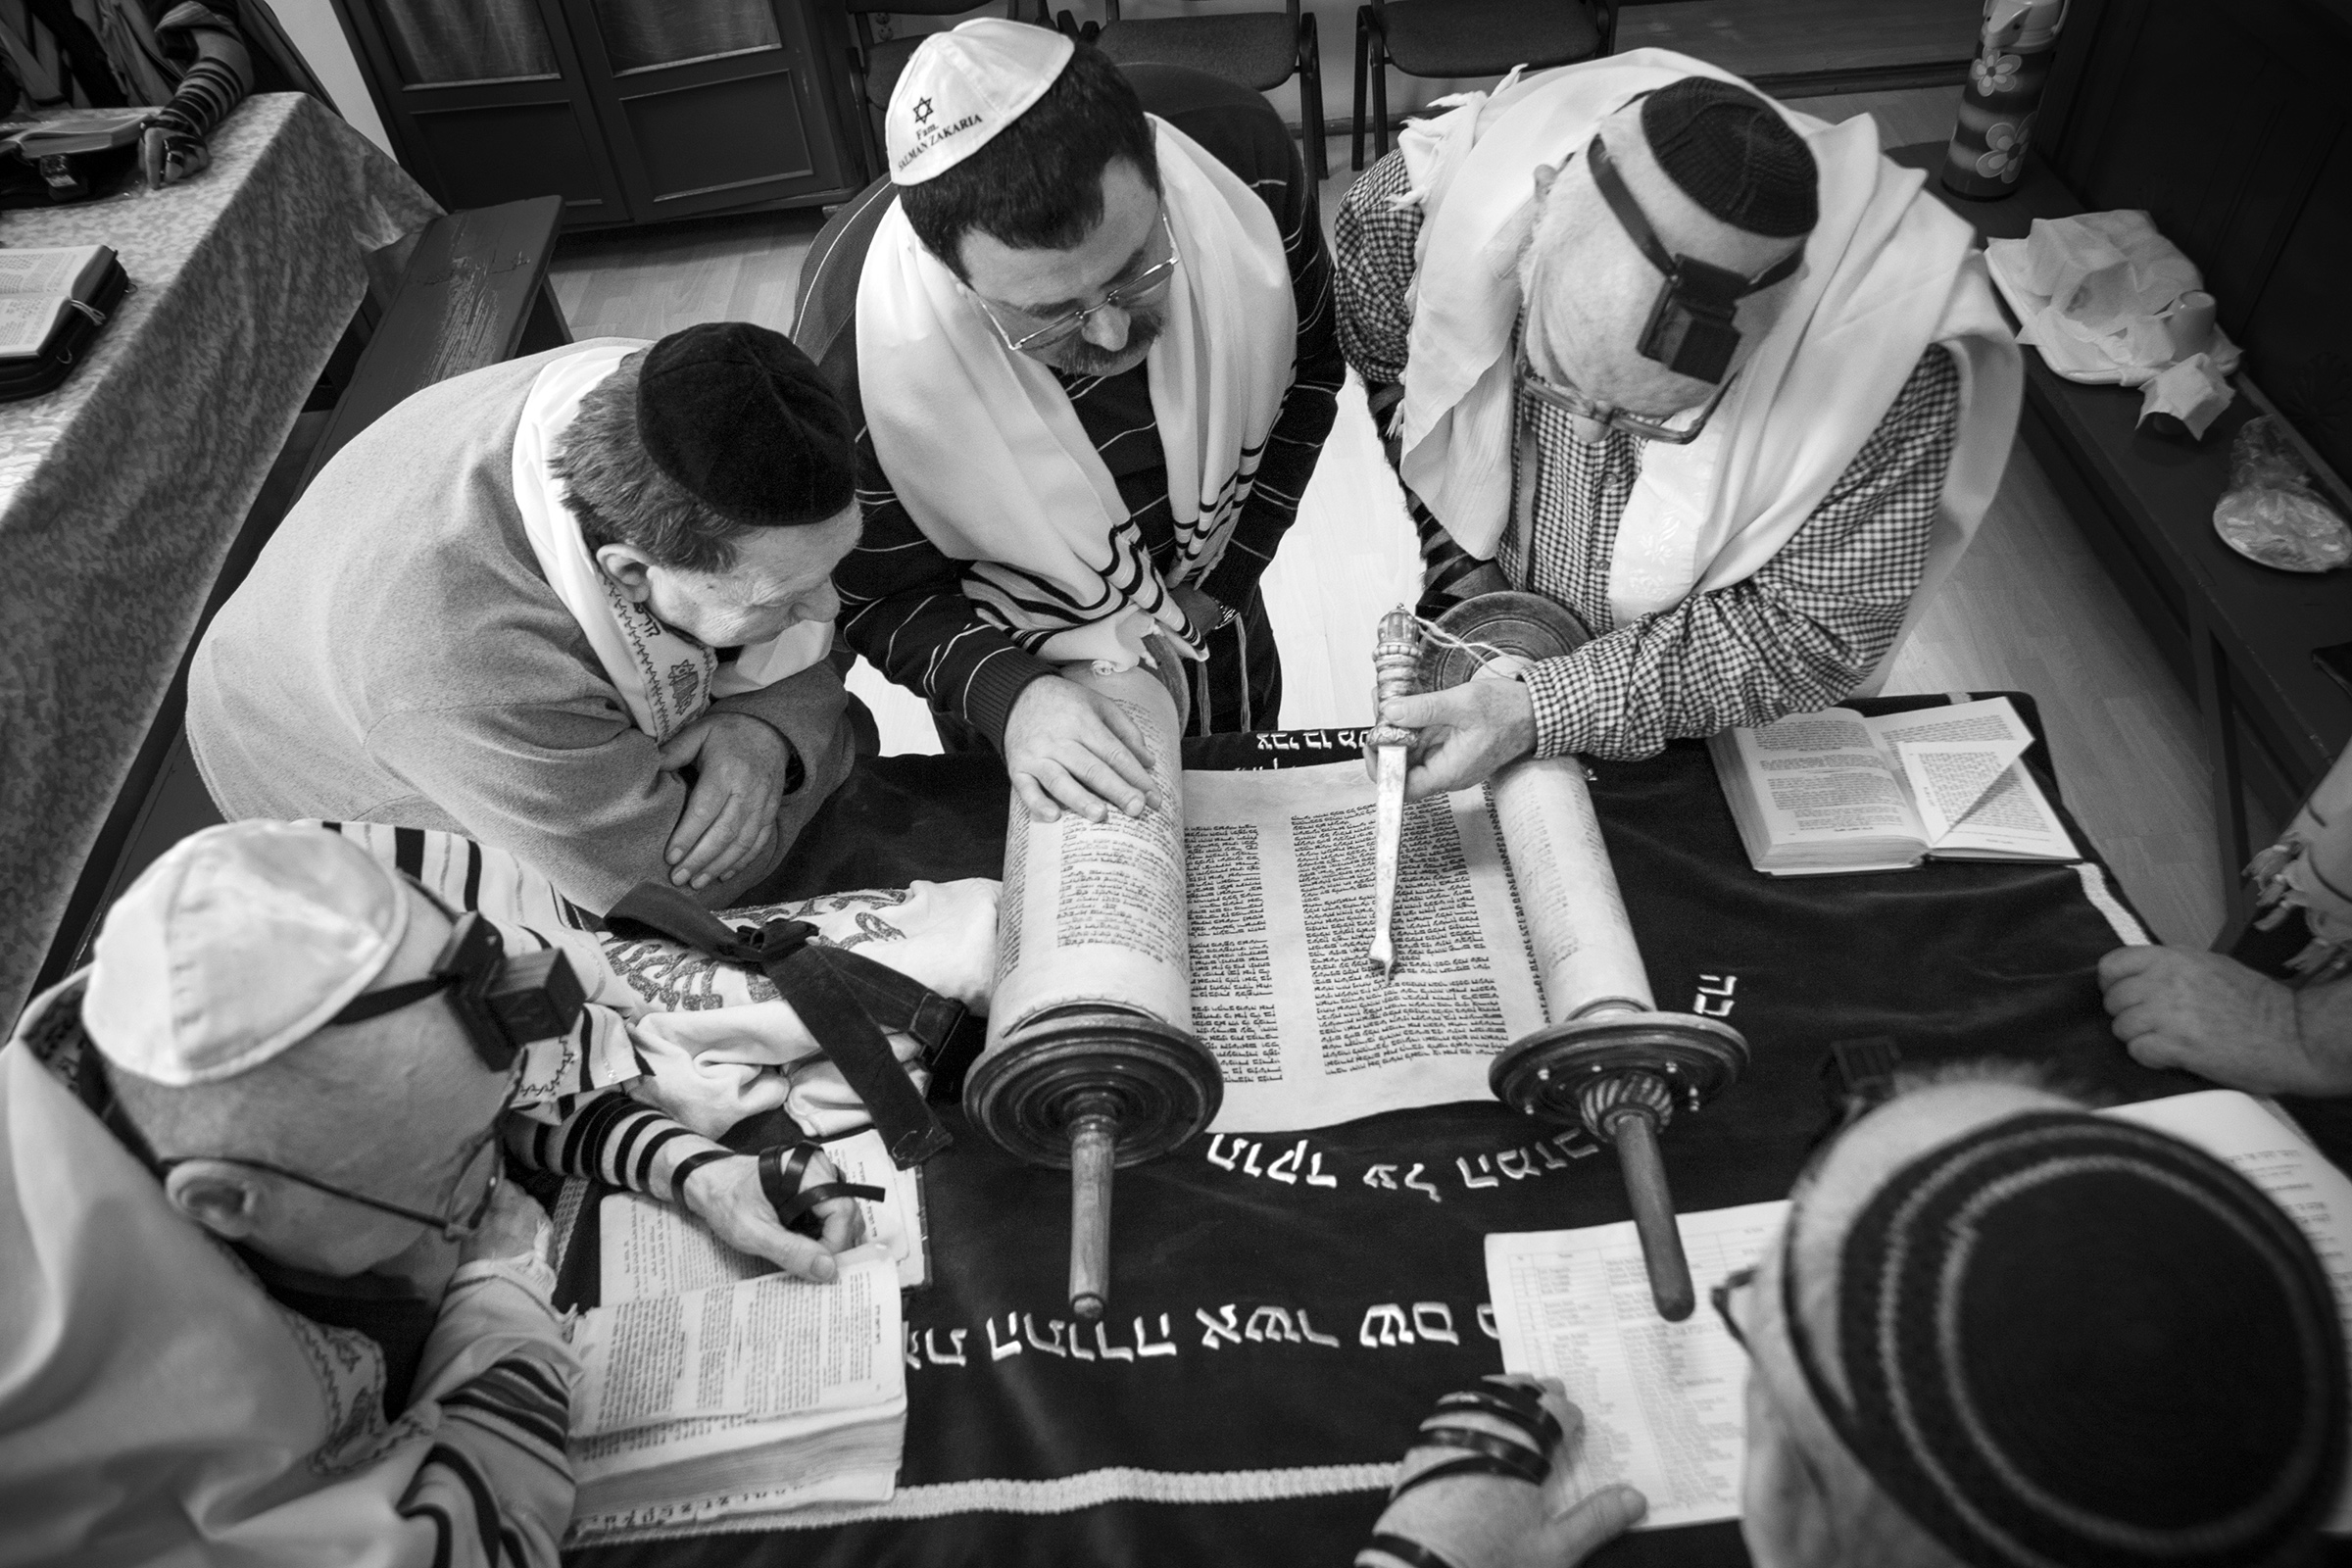 Male members of the Jewish Community Center in Oradea, Romania meet on April 11, 2013, for their weekly reading of the Torah, the Jewish holy book. Though the once thriving community of thirty thousand was devastated by the Holocaust, the few remaining members continue to carry on the ancient Jewish religious traditions. (Photo by Daniel Owen/GroundTruth)